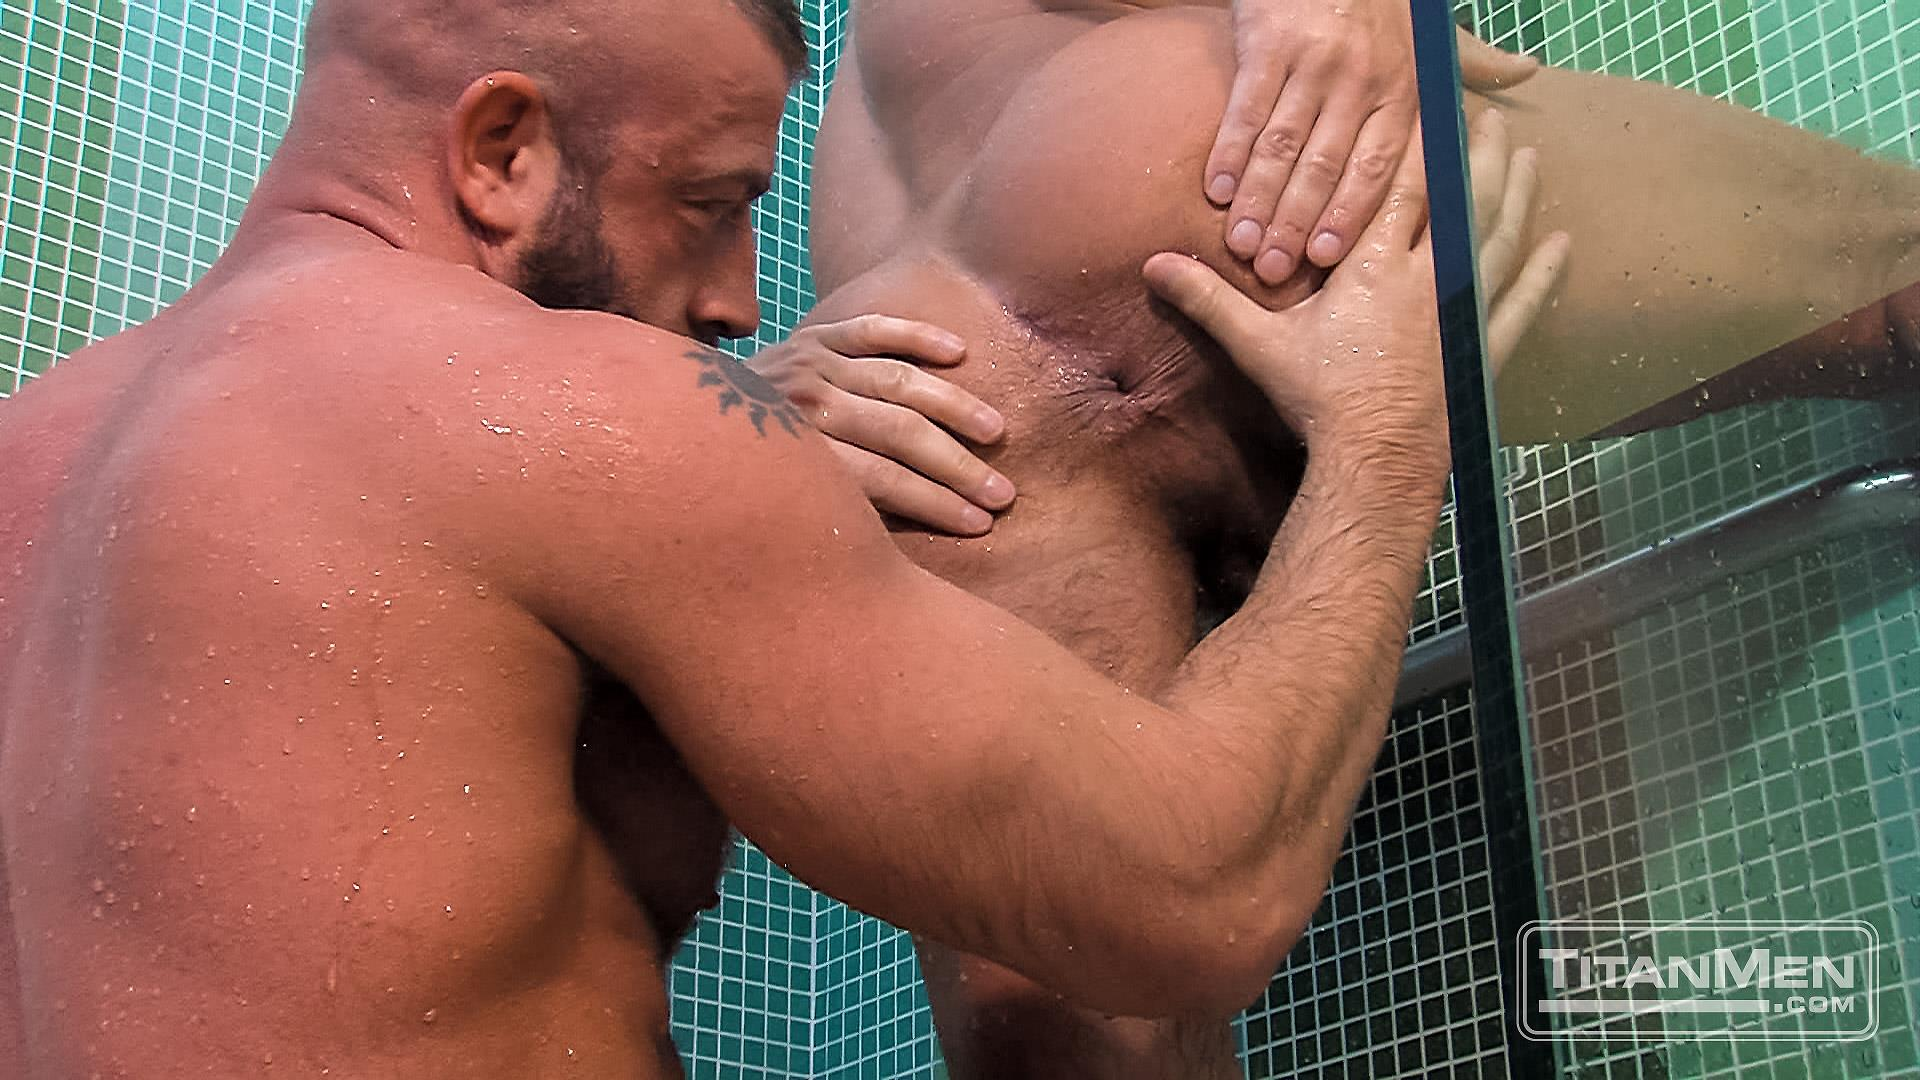 Titanmen-Titan-Hunter-Marx-and-Dirk-Caber-Hairy-Muscle-Daddy-Fuck-Amateur-Gay-Porn-24 Dirk Carber Gets Fucked Hard By Another Muscle Daddy With A Thick Cock